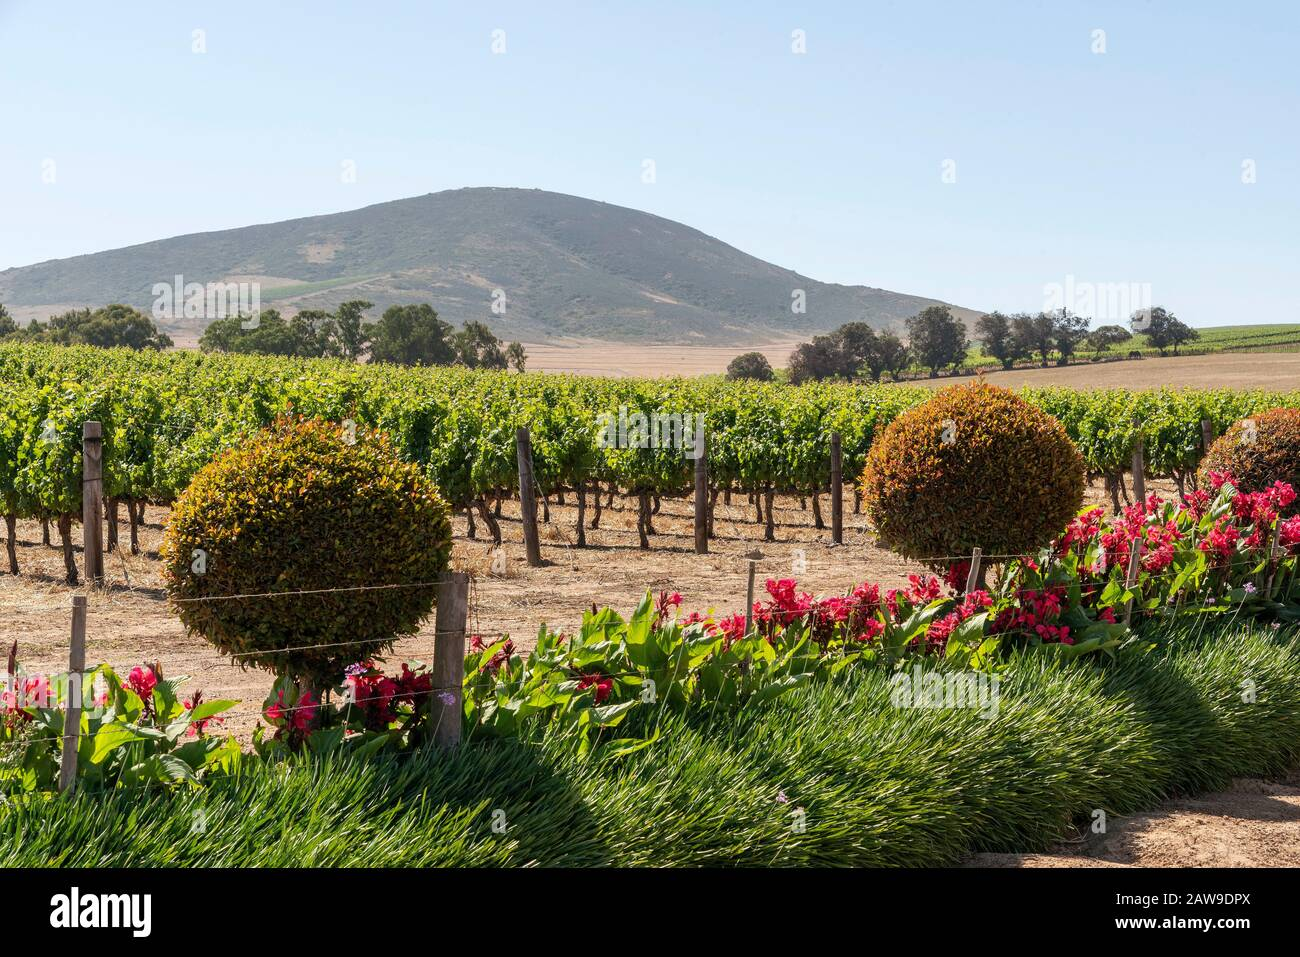 Durbanville, Cape Town, South Africa. Dec 2019.  Grapes on vines in the Durbanville wine growing region close to Cape Town, South Africa Stock Photo